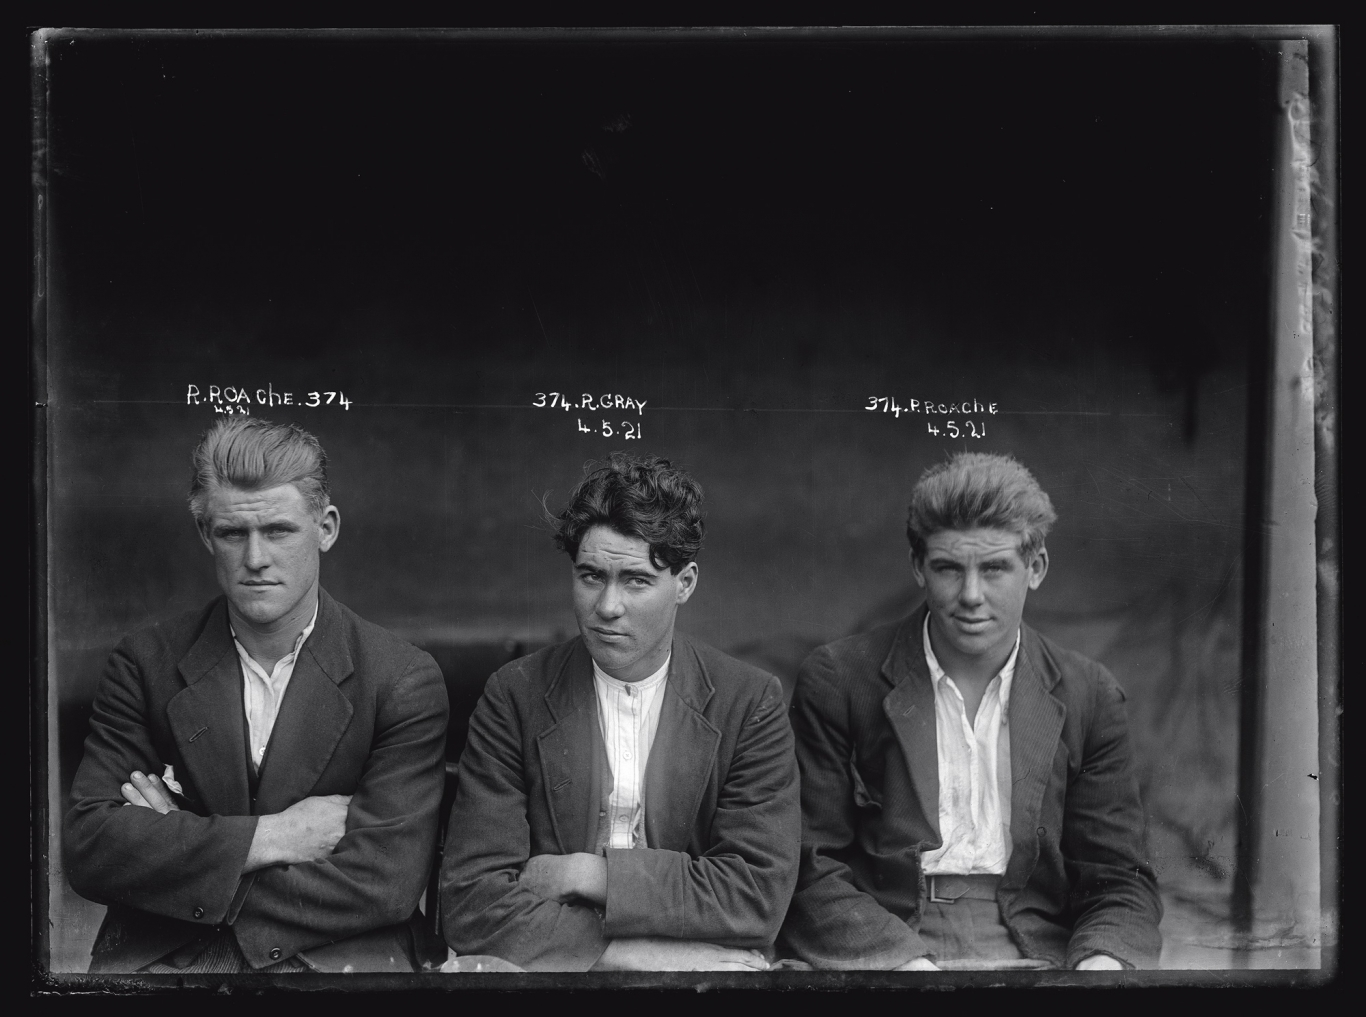 Black and white mugshot of three seated men.